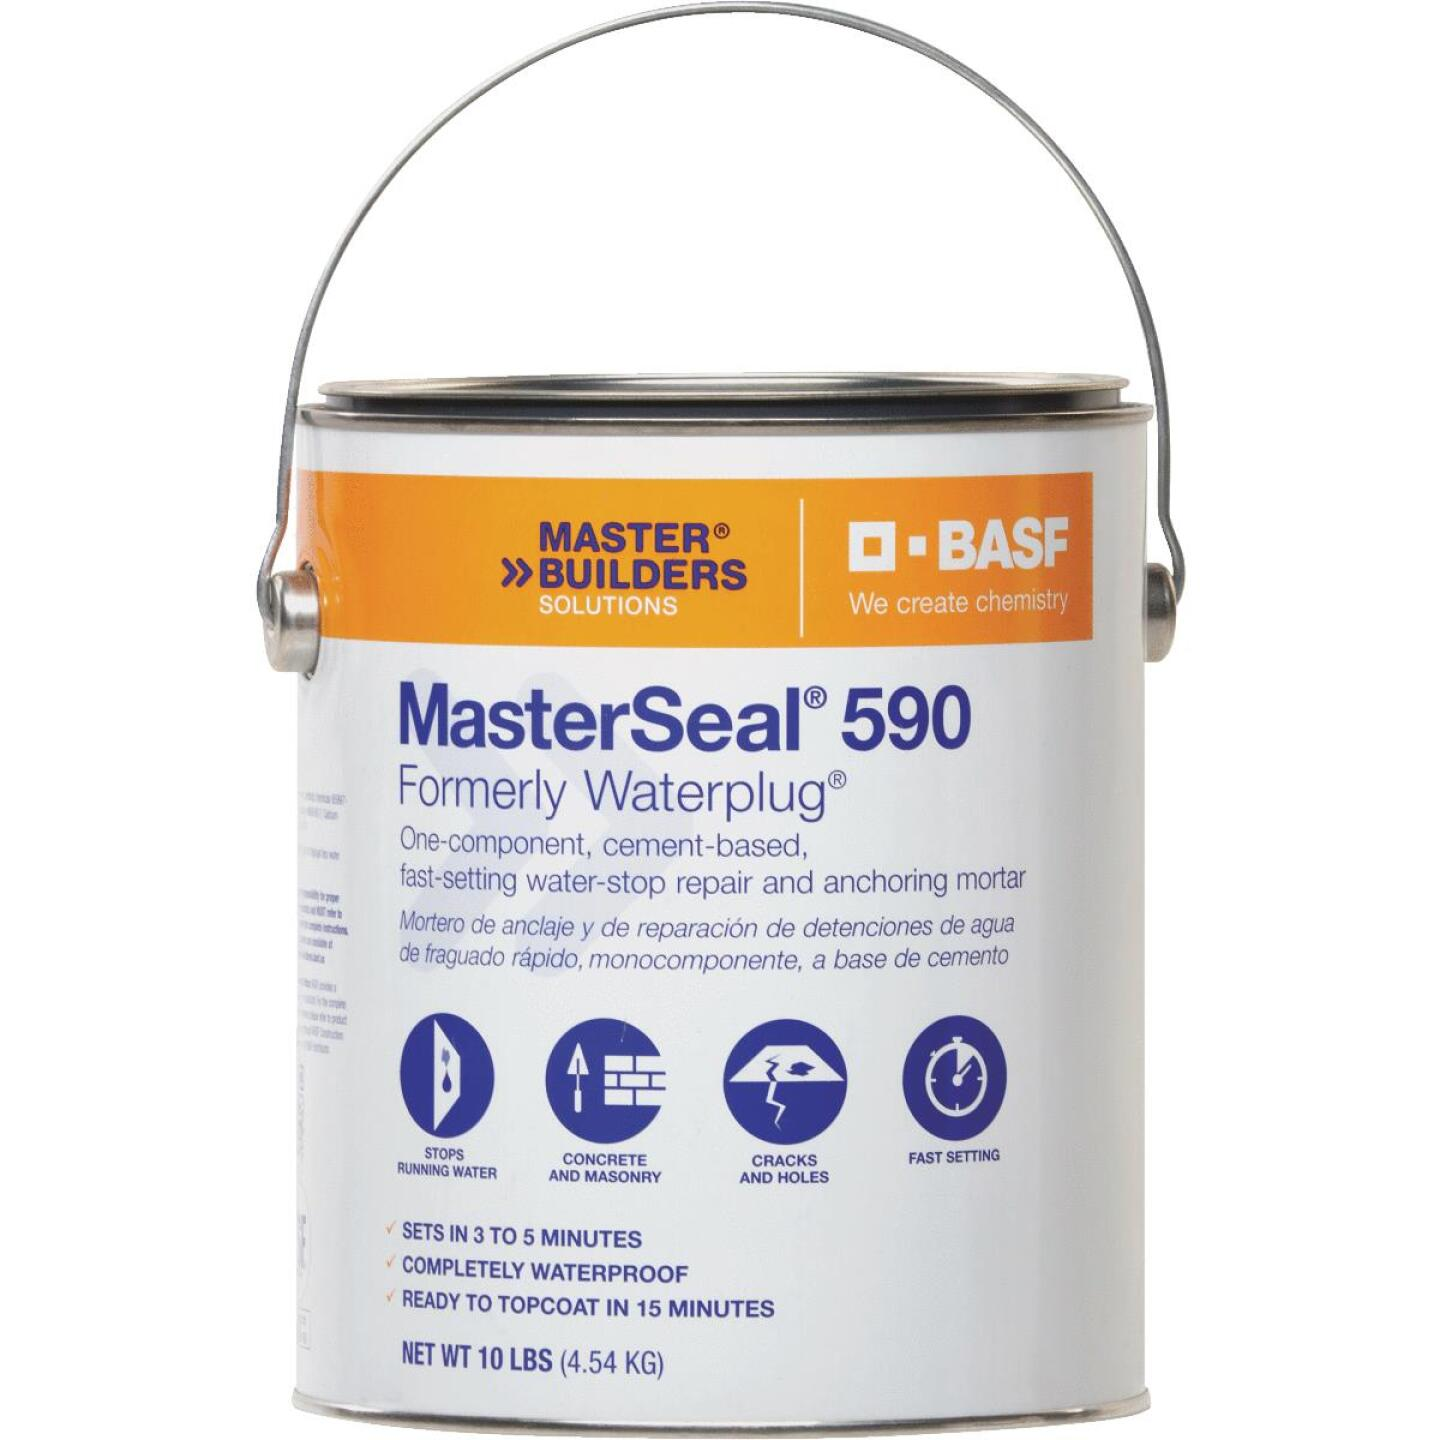 MasterSeal 590 10 Lb. Hydraulic Cement Image 1